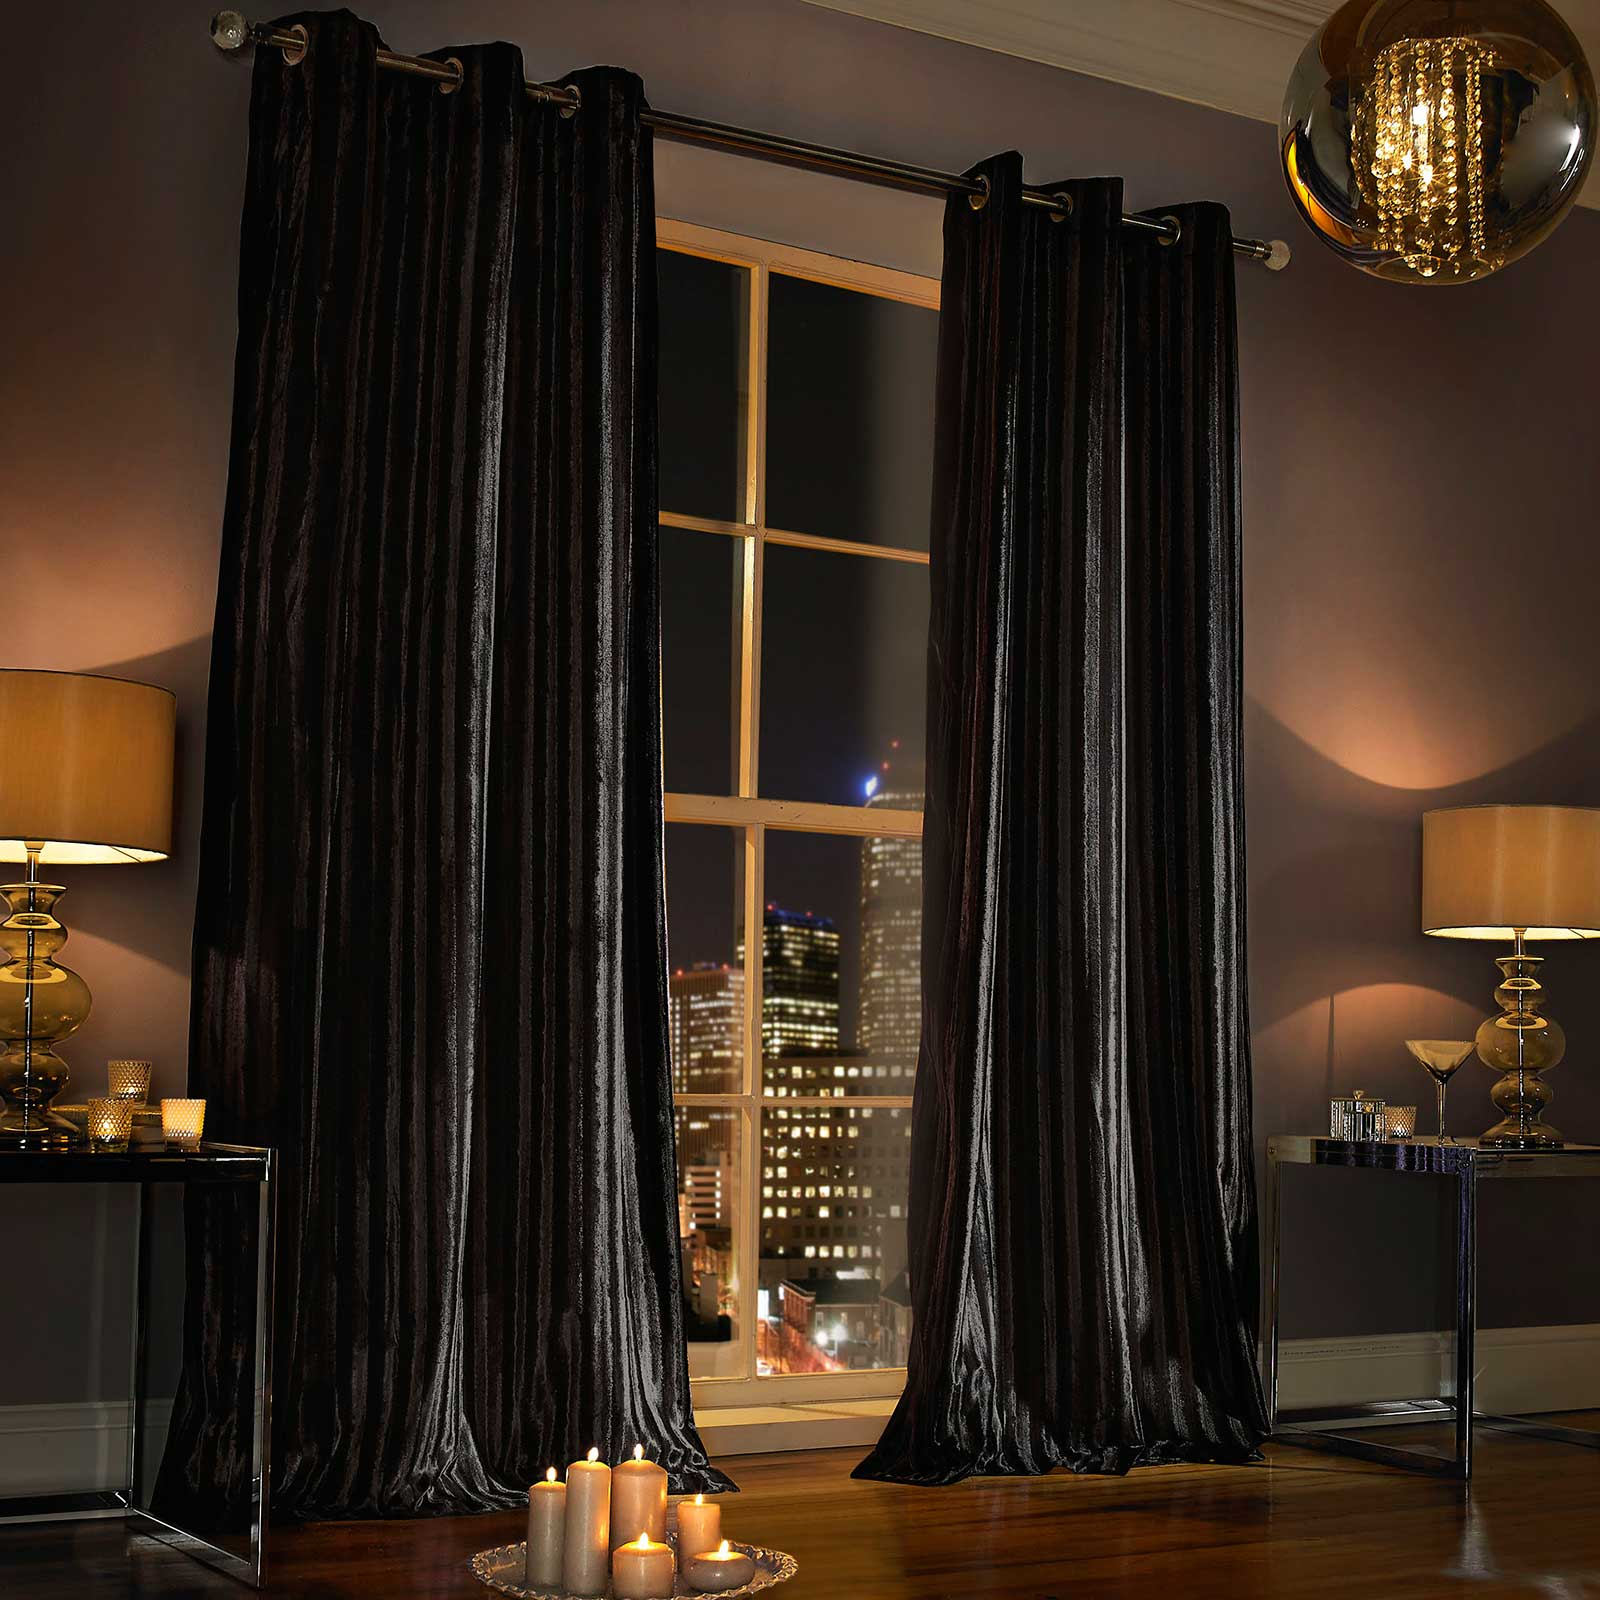 Luxury curtain panels